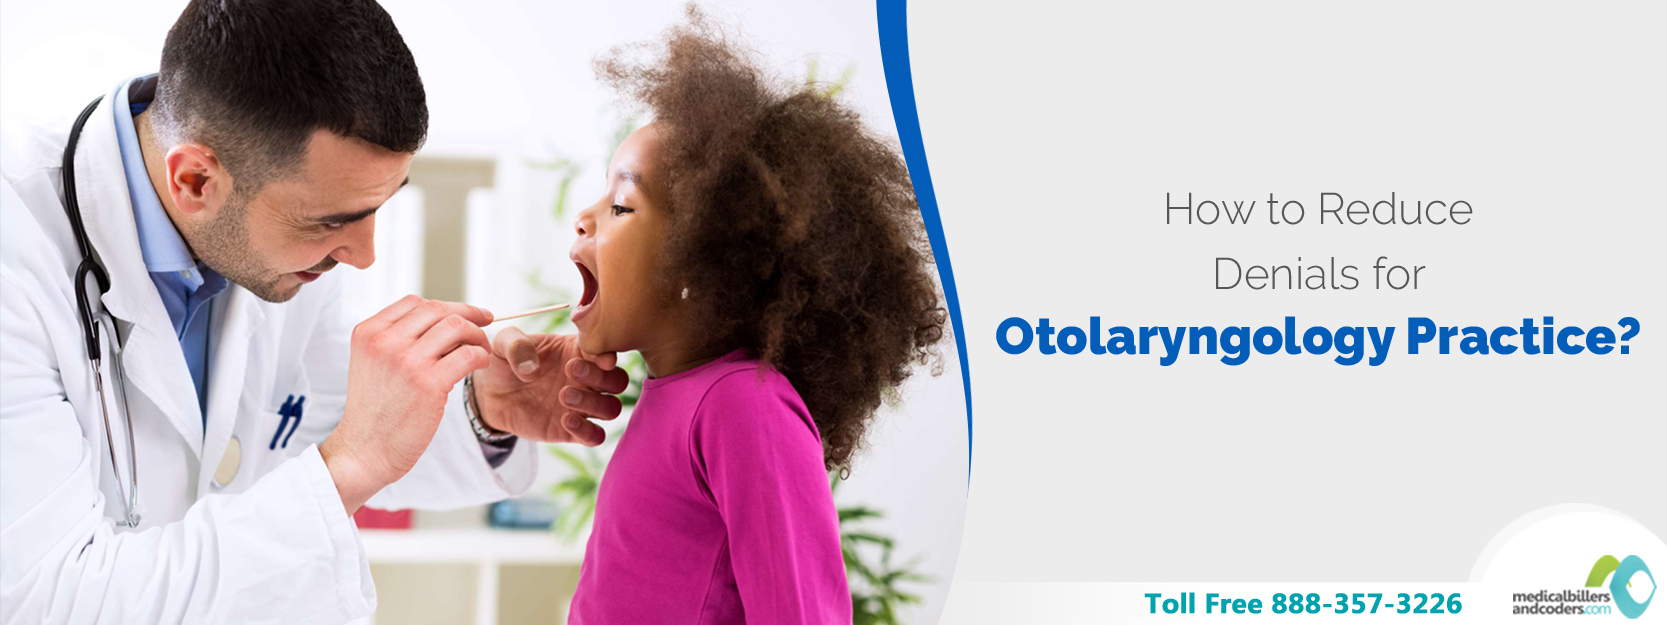 How to Reduce Denials for Otolaryngology Practice?